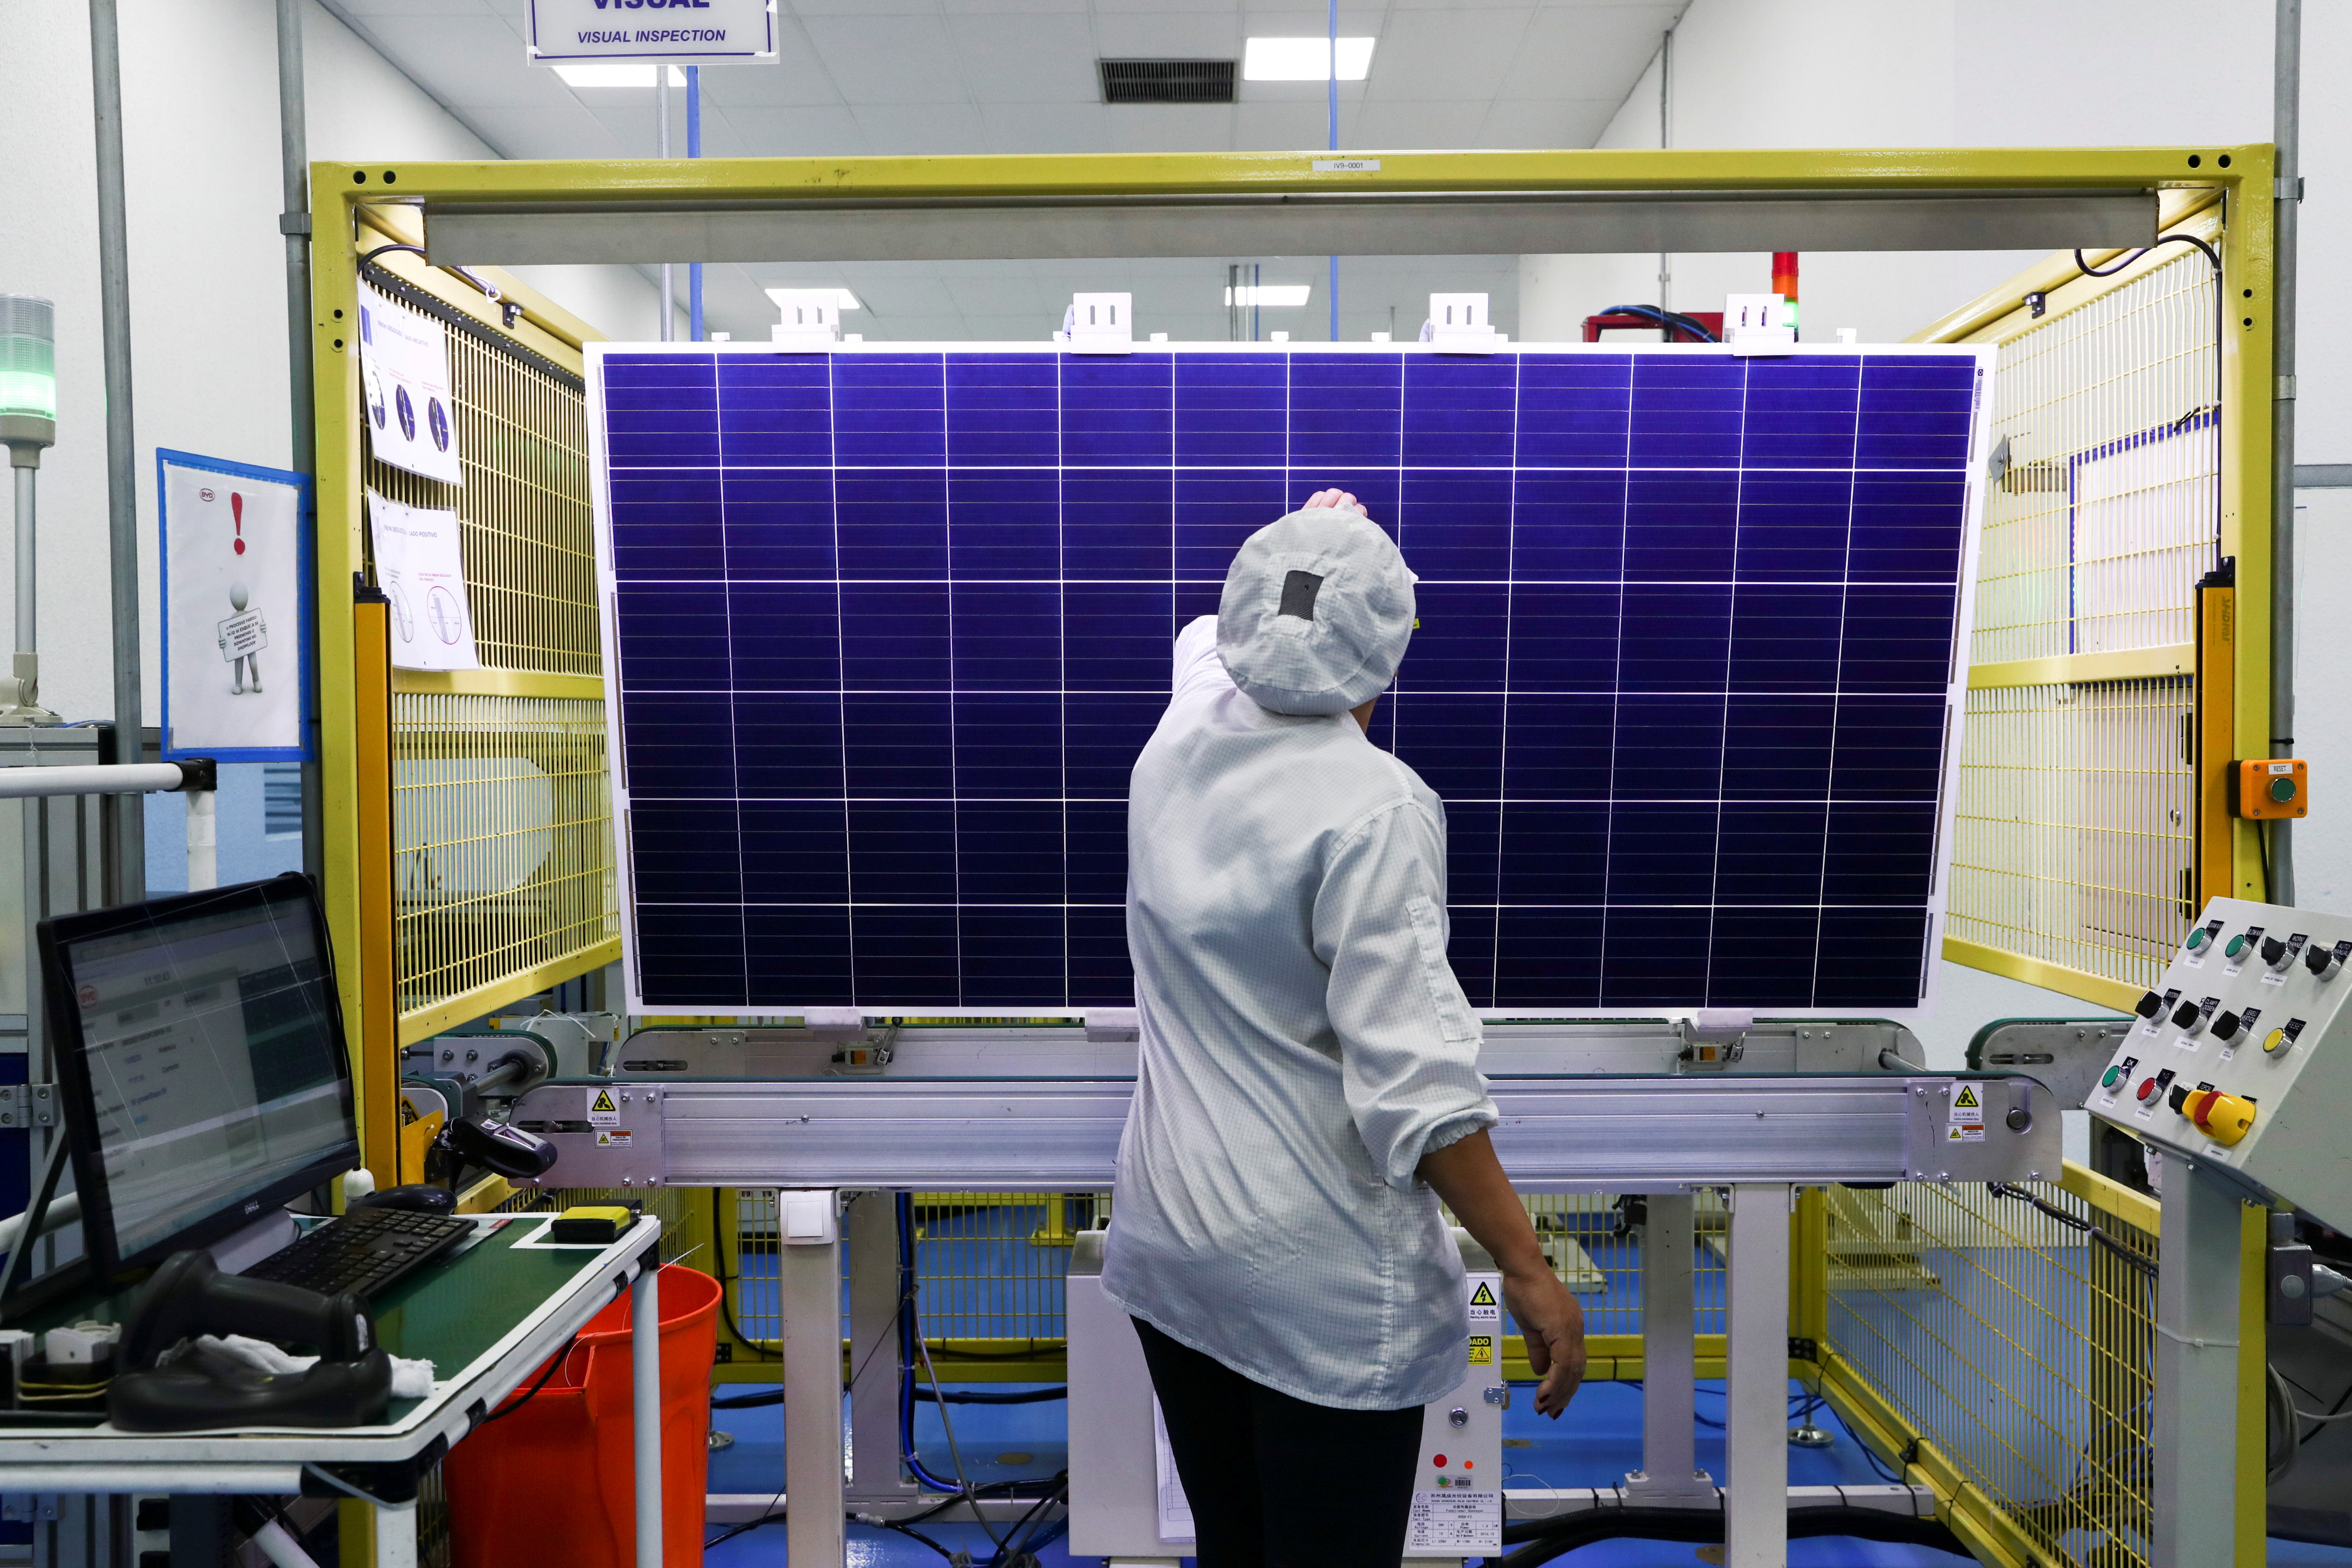 An employee conducts a quality-check of a solar module product at a factory of Chinese solar equipment manufacturer BYD in Campinas, Brazil February 13, 2020. Picture taken February 13, 2020. REUTERS/Amanda Perobelli/File Photo